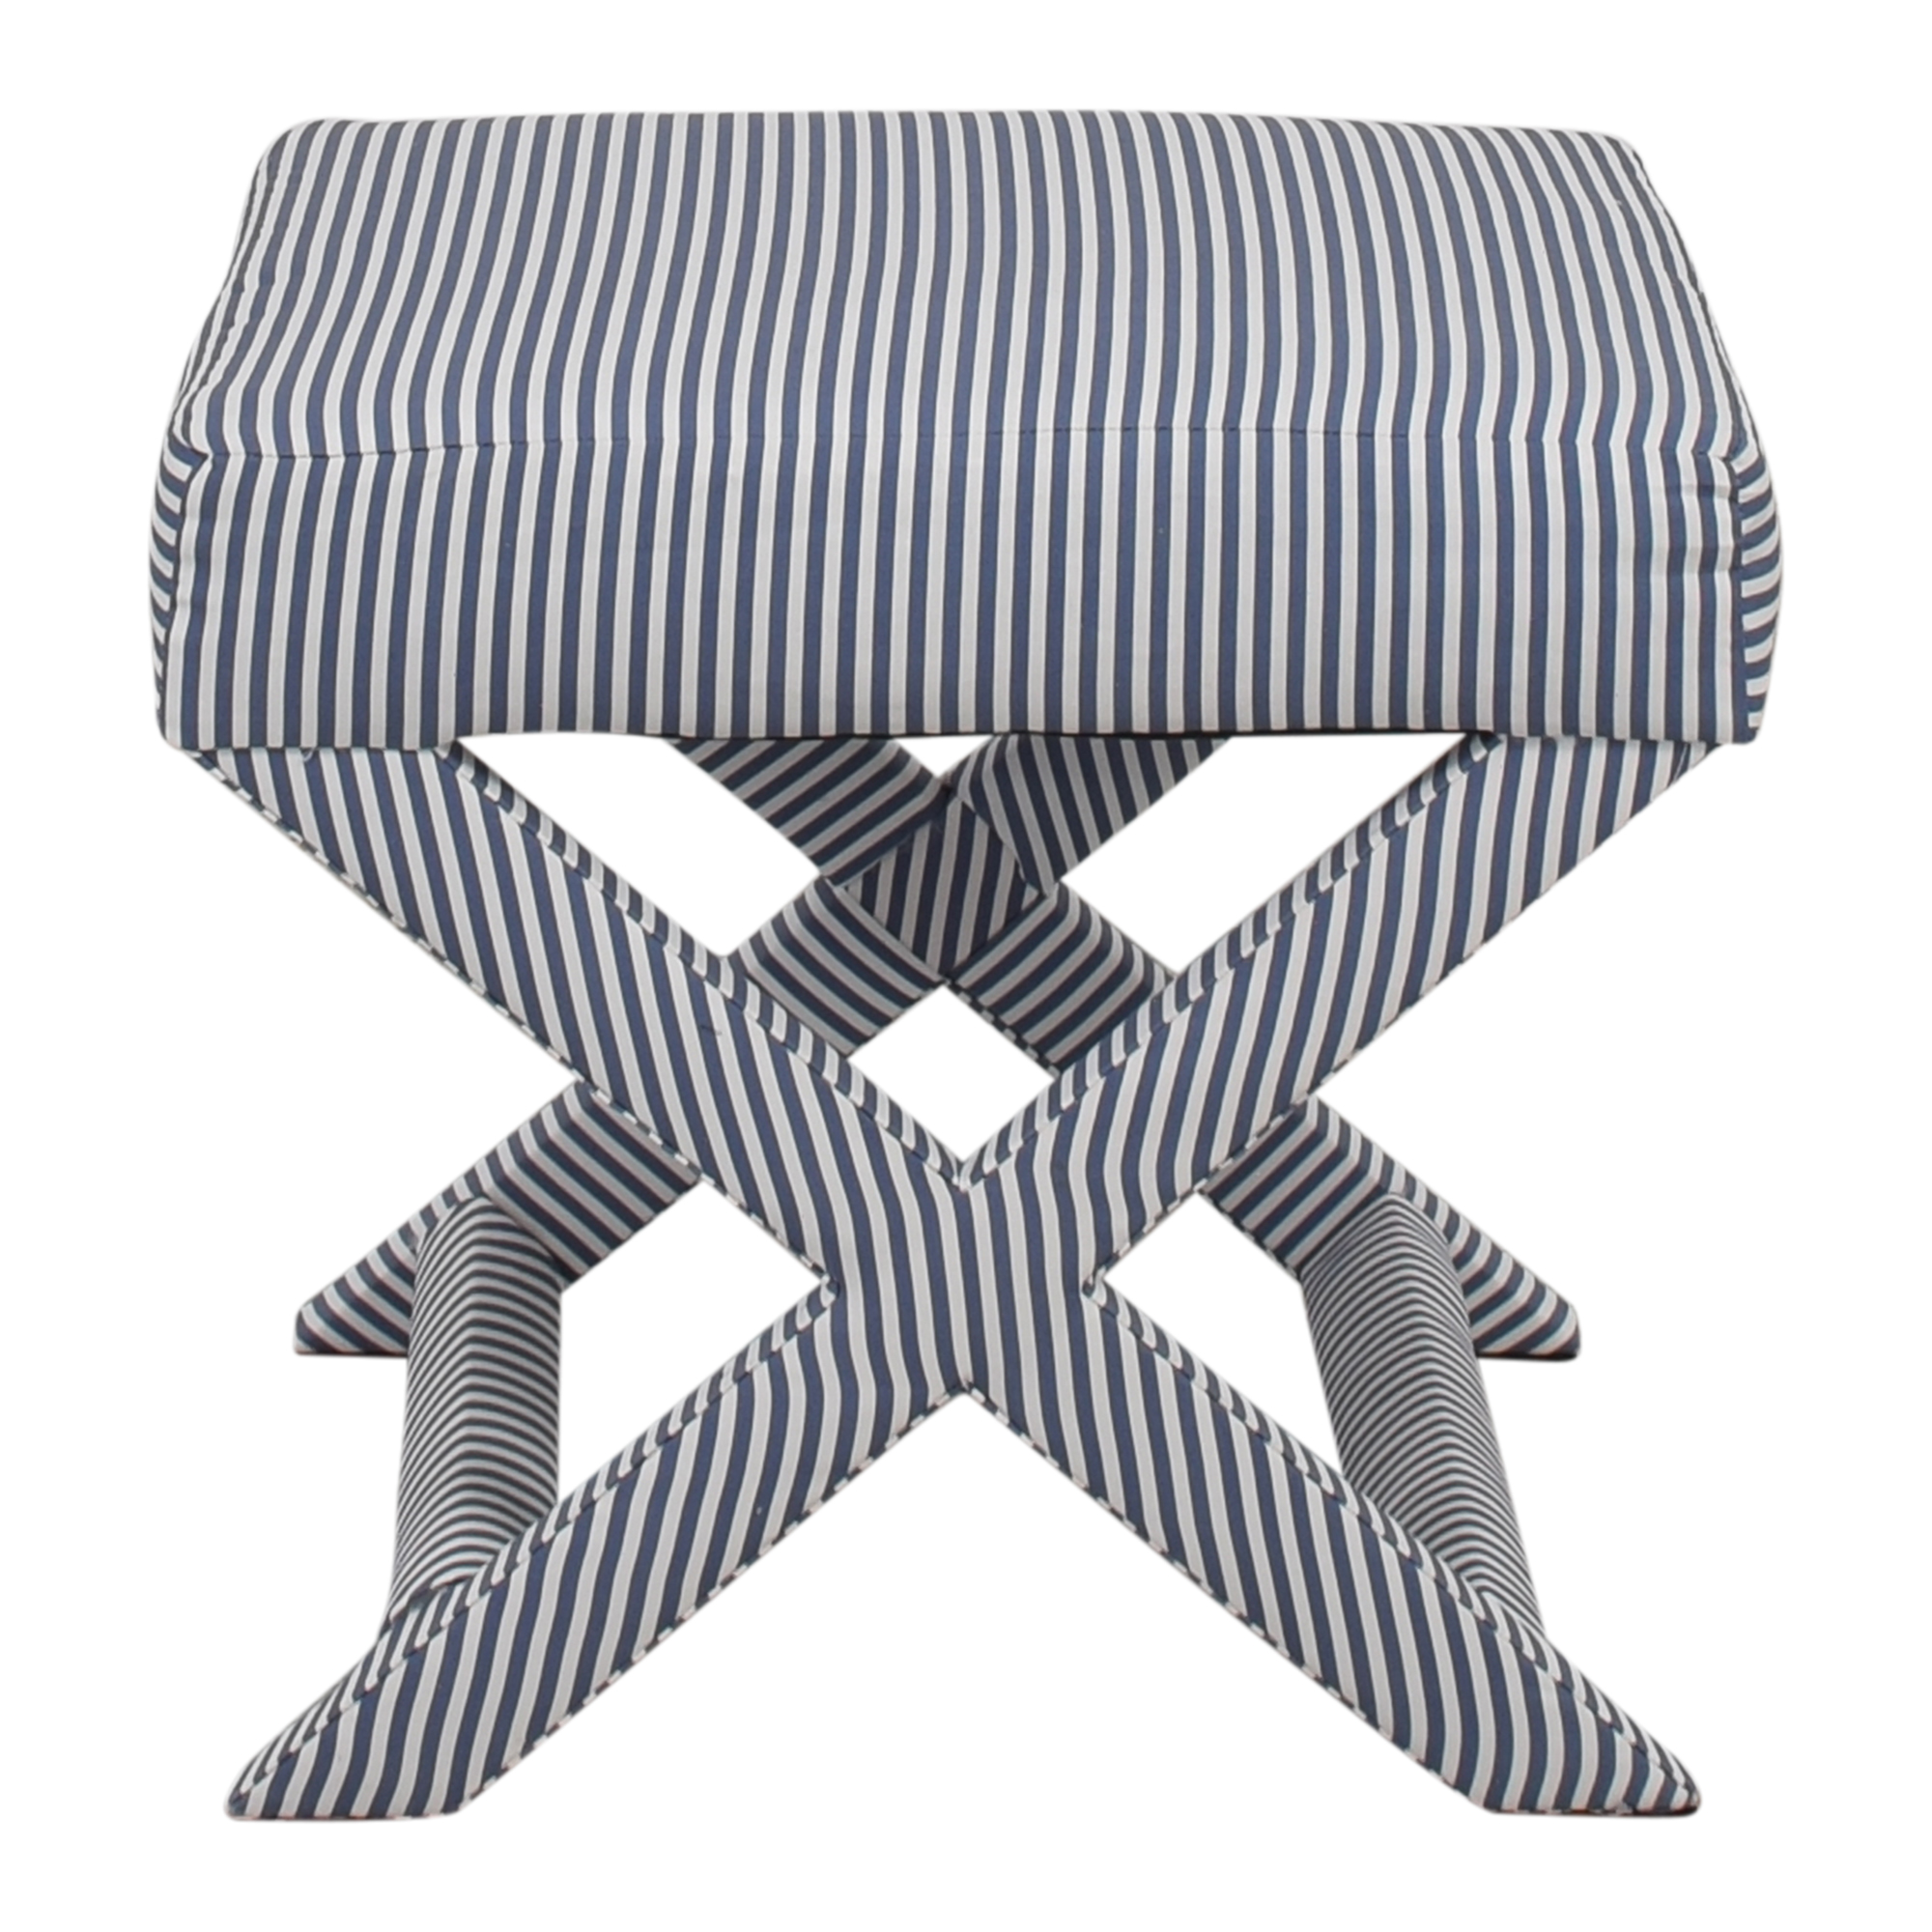 The Inside The inside Ticking Stripe X Bench ct